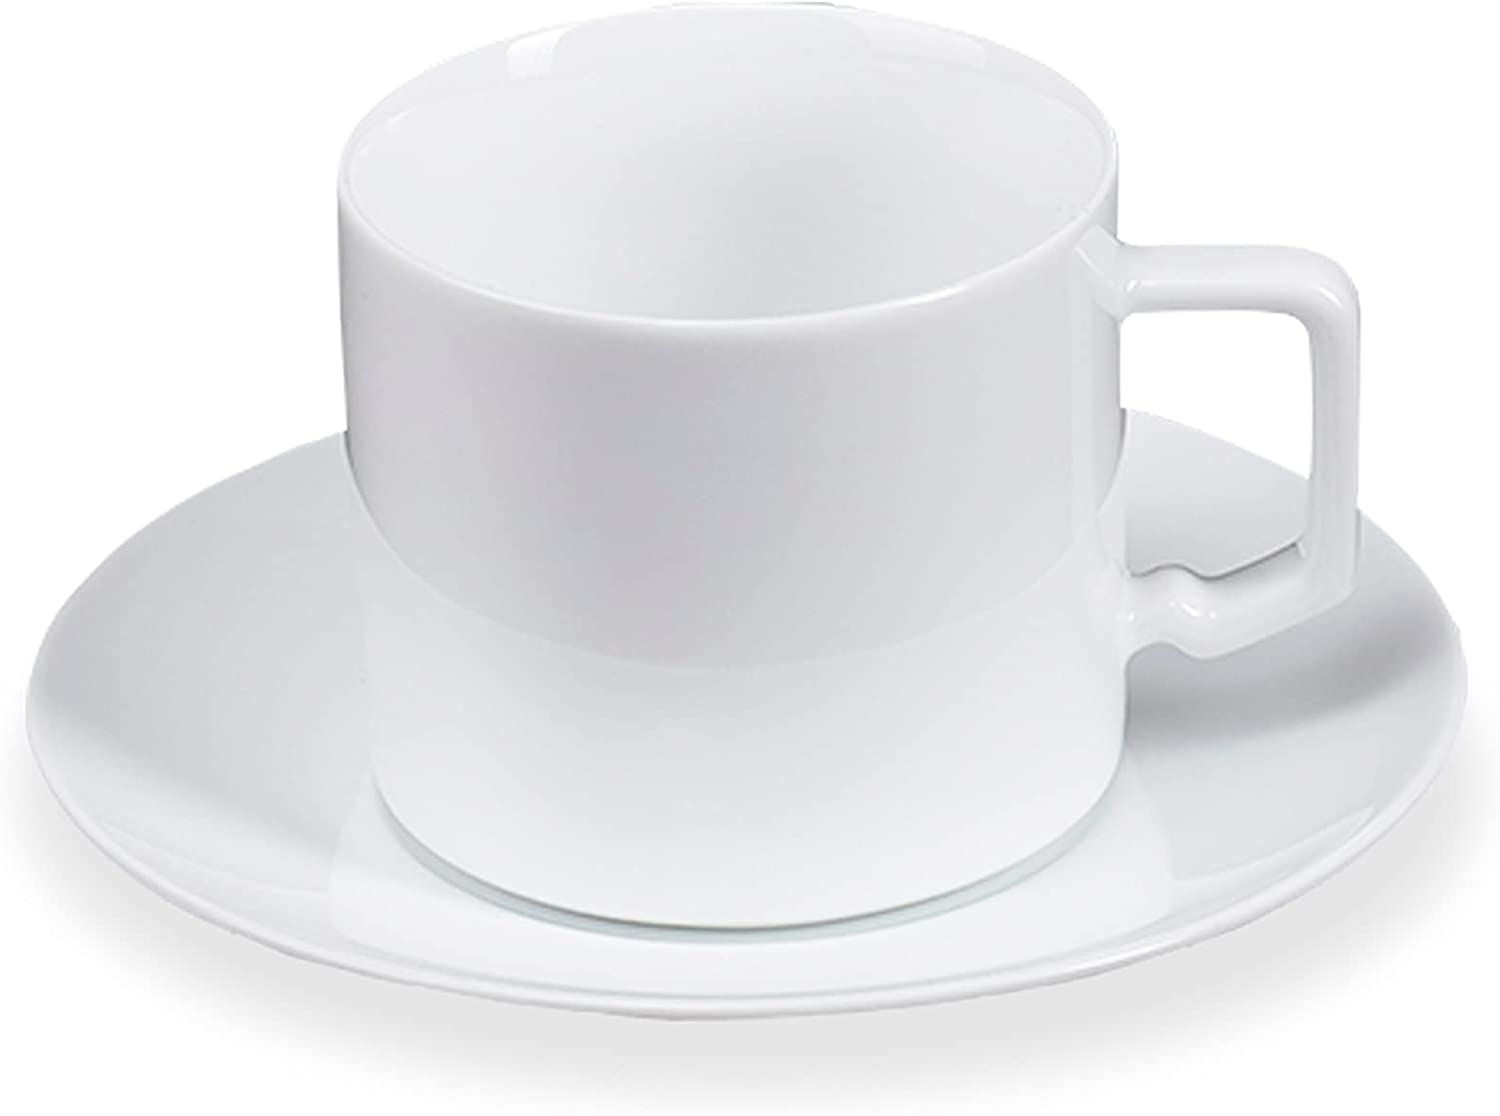 JGSXBVR SM Tea Cups and Inexpensive Saucers with combined El art 7oz 100% quality warranty Coffee